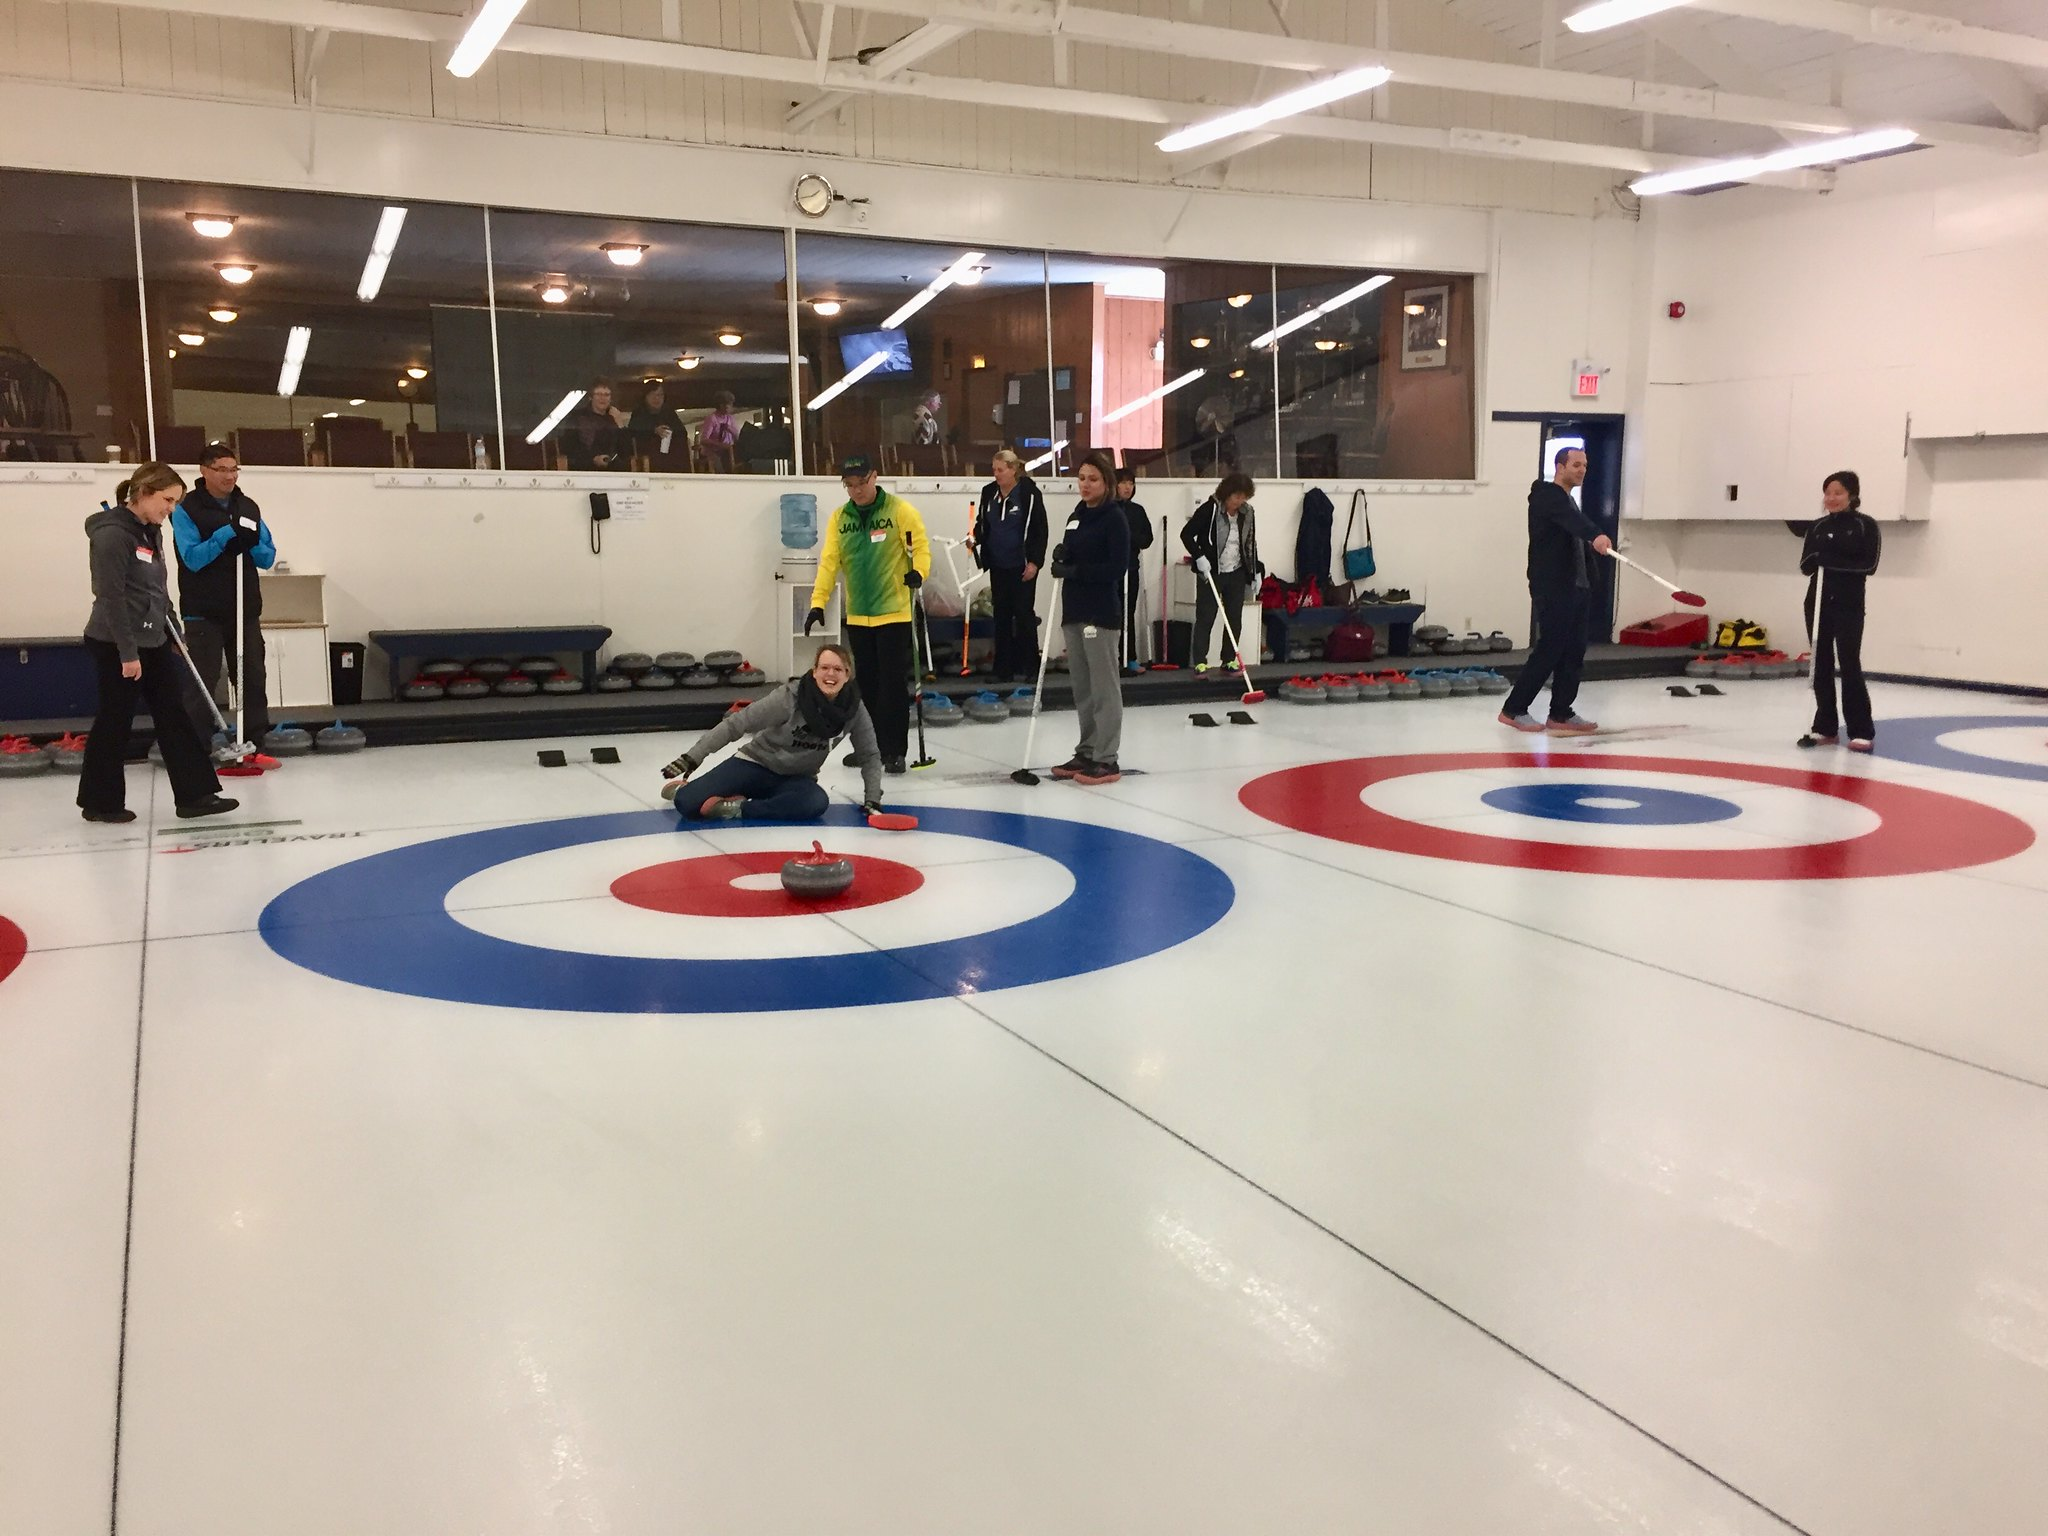 Falling over when learning to deliver the curling stone.